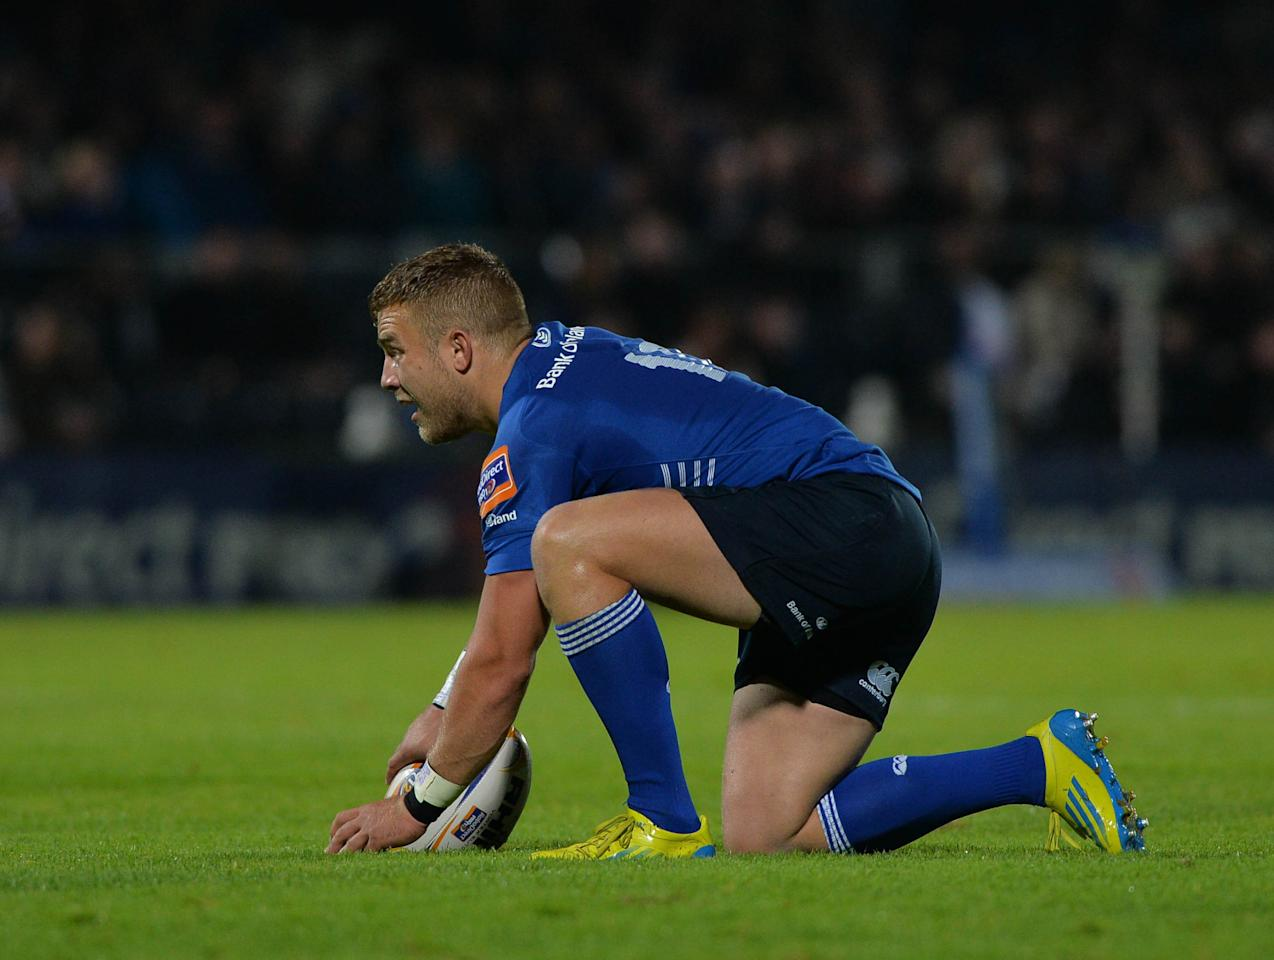 Leinster Rugby's Ian Madigan prepares for a penalty during the RaboDirect PRO12 match at the RDS Arena, Dublin, Ireland.